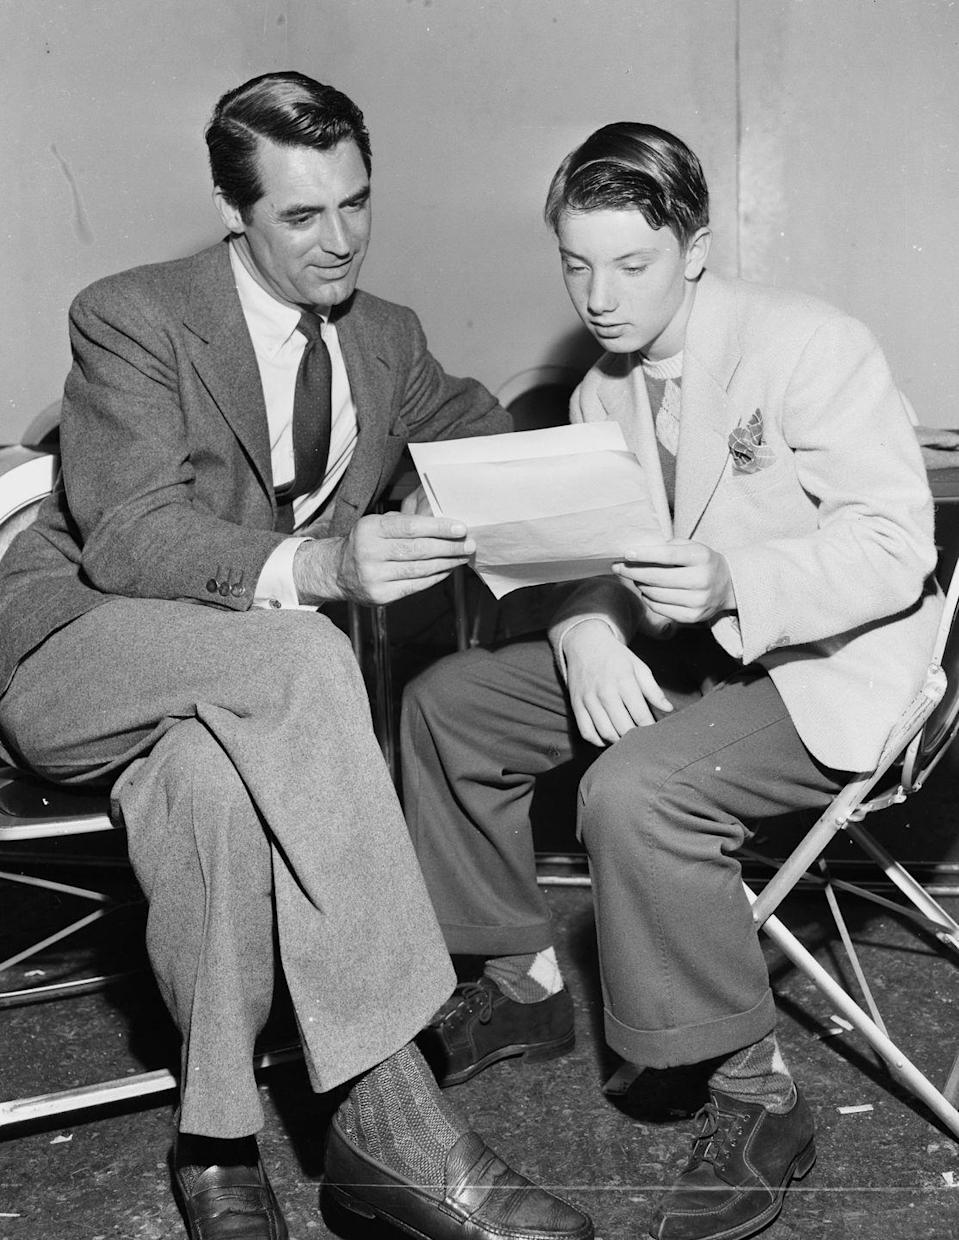 <p>The year he turned 40, Grant would appear in three movies, including one of his best, <em>Arsenic and Old Lace</em>. (In this picture, he's rehearsing lines for a radio program.)</p>